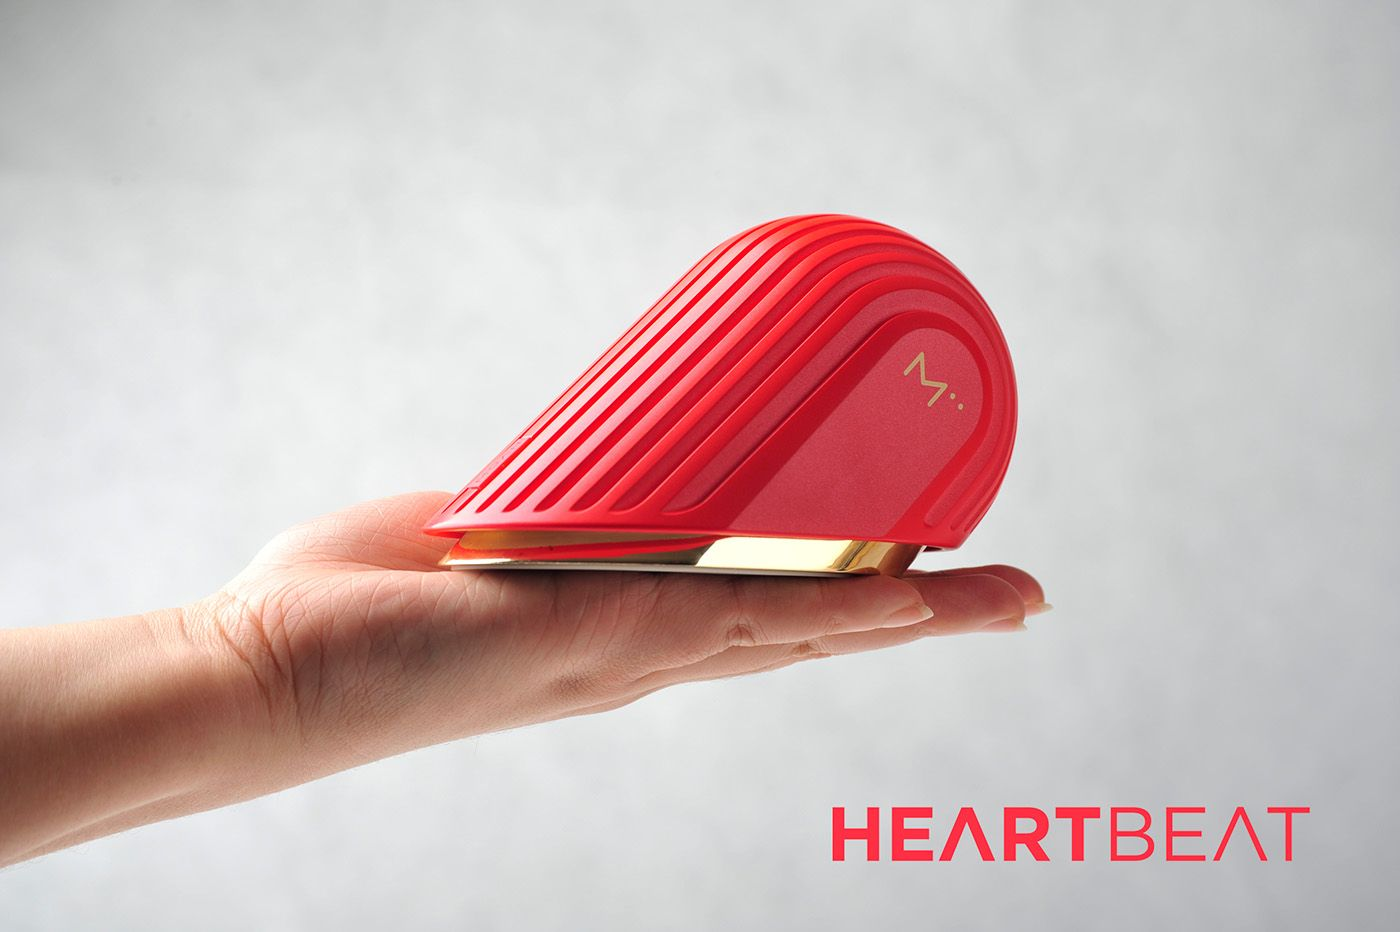 Heartbeat Is A Disruptive New Portable Audio Device That Allows You To Experience A Unique Interactive Relations Wearable Device Design Gadgets In A Heartbeat